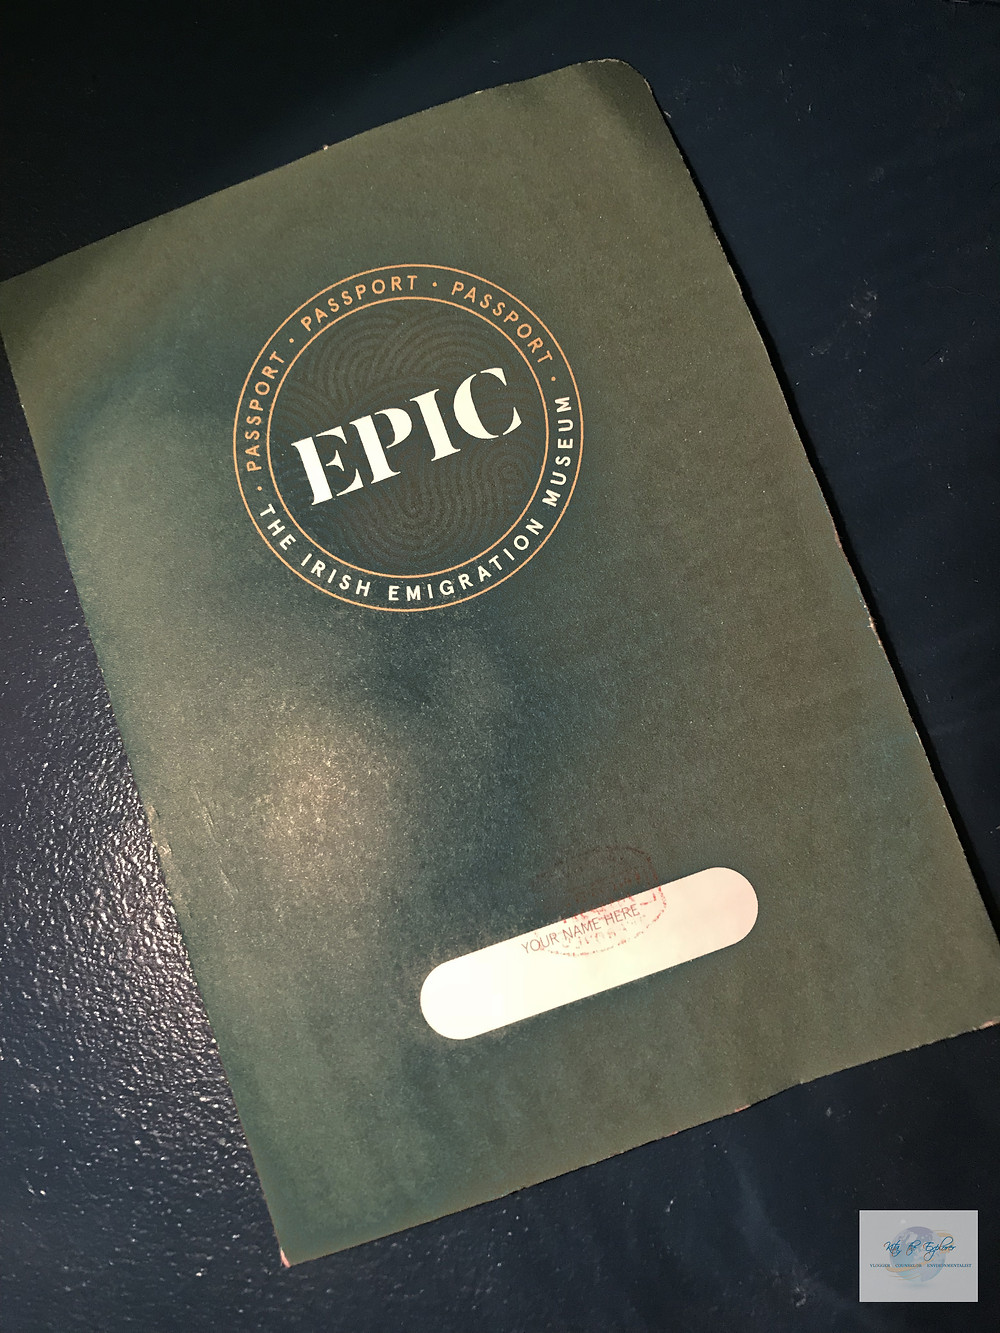 PASSPORT FOR EPIC MUSEUM